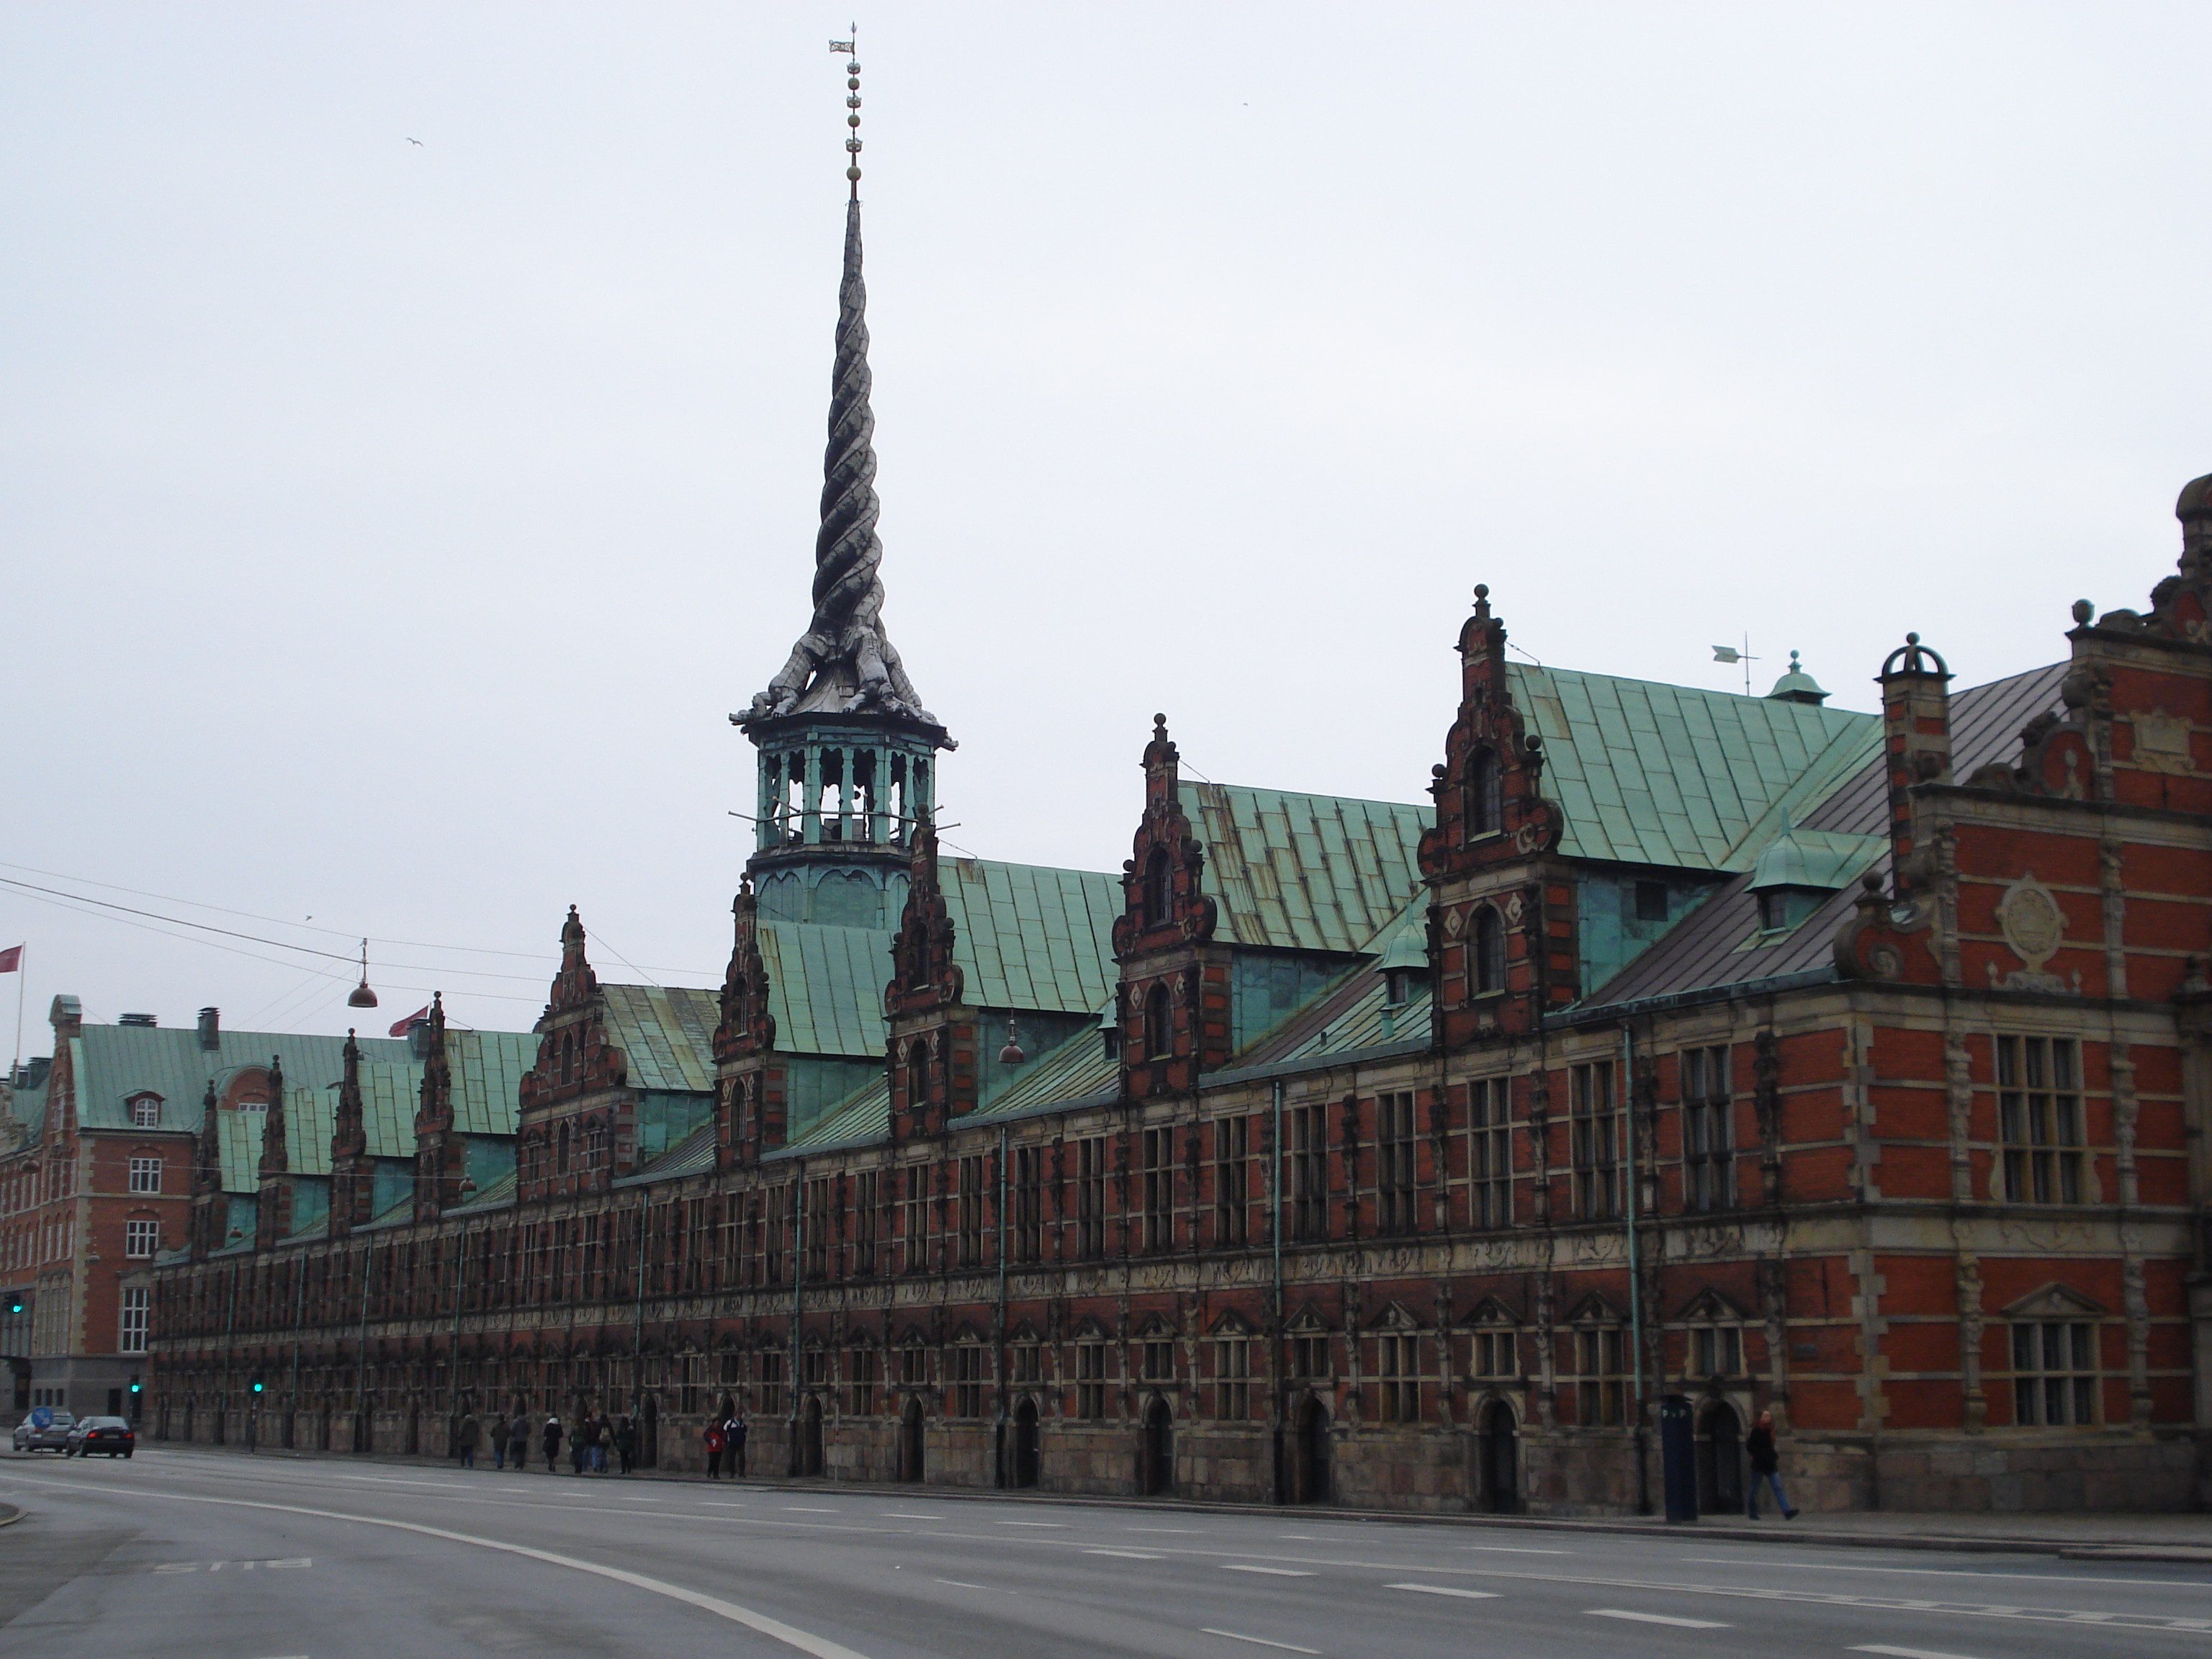 The Stock Exchange was originally a warehouse in Dutch Renaissance style, dating from the early 17th Century. The original building was not grand enough for King Christian IV so in 1625 he commissioned 18 striking gables and a 54 metre high spire made up of four entwined dragons'tails.